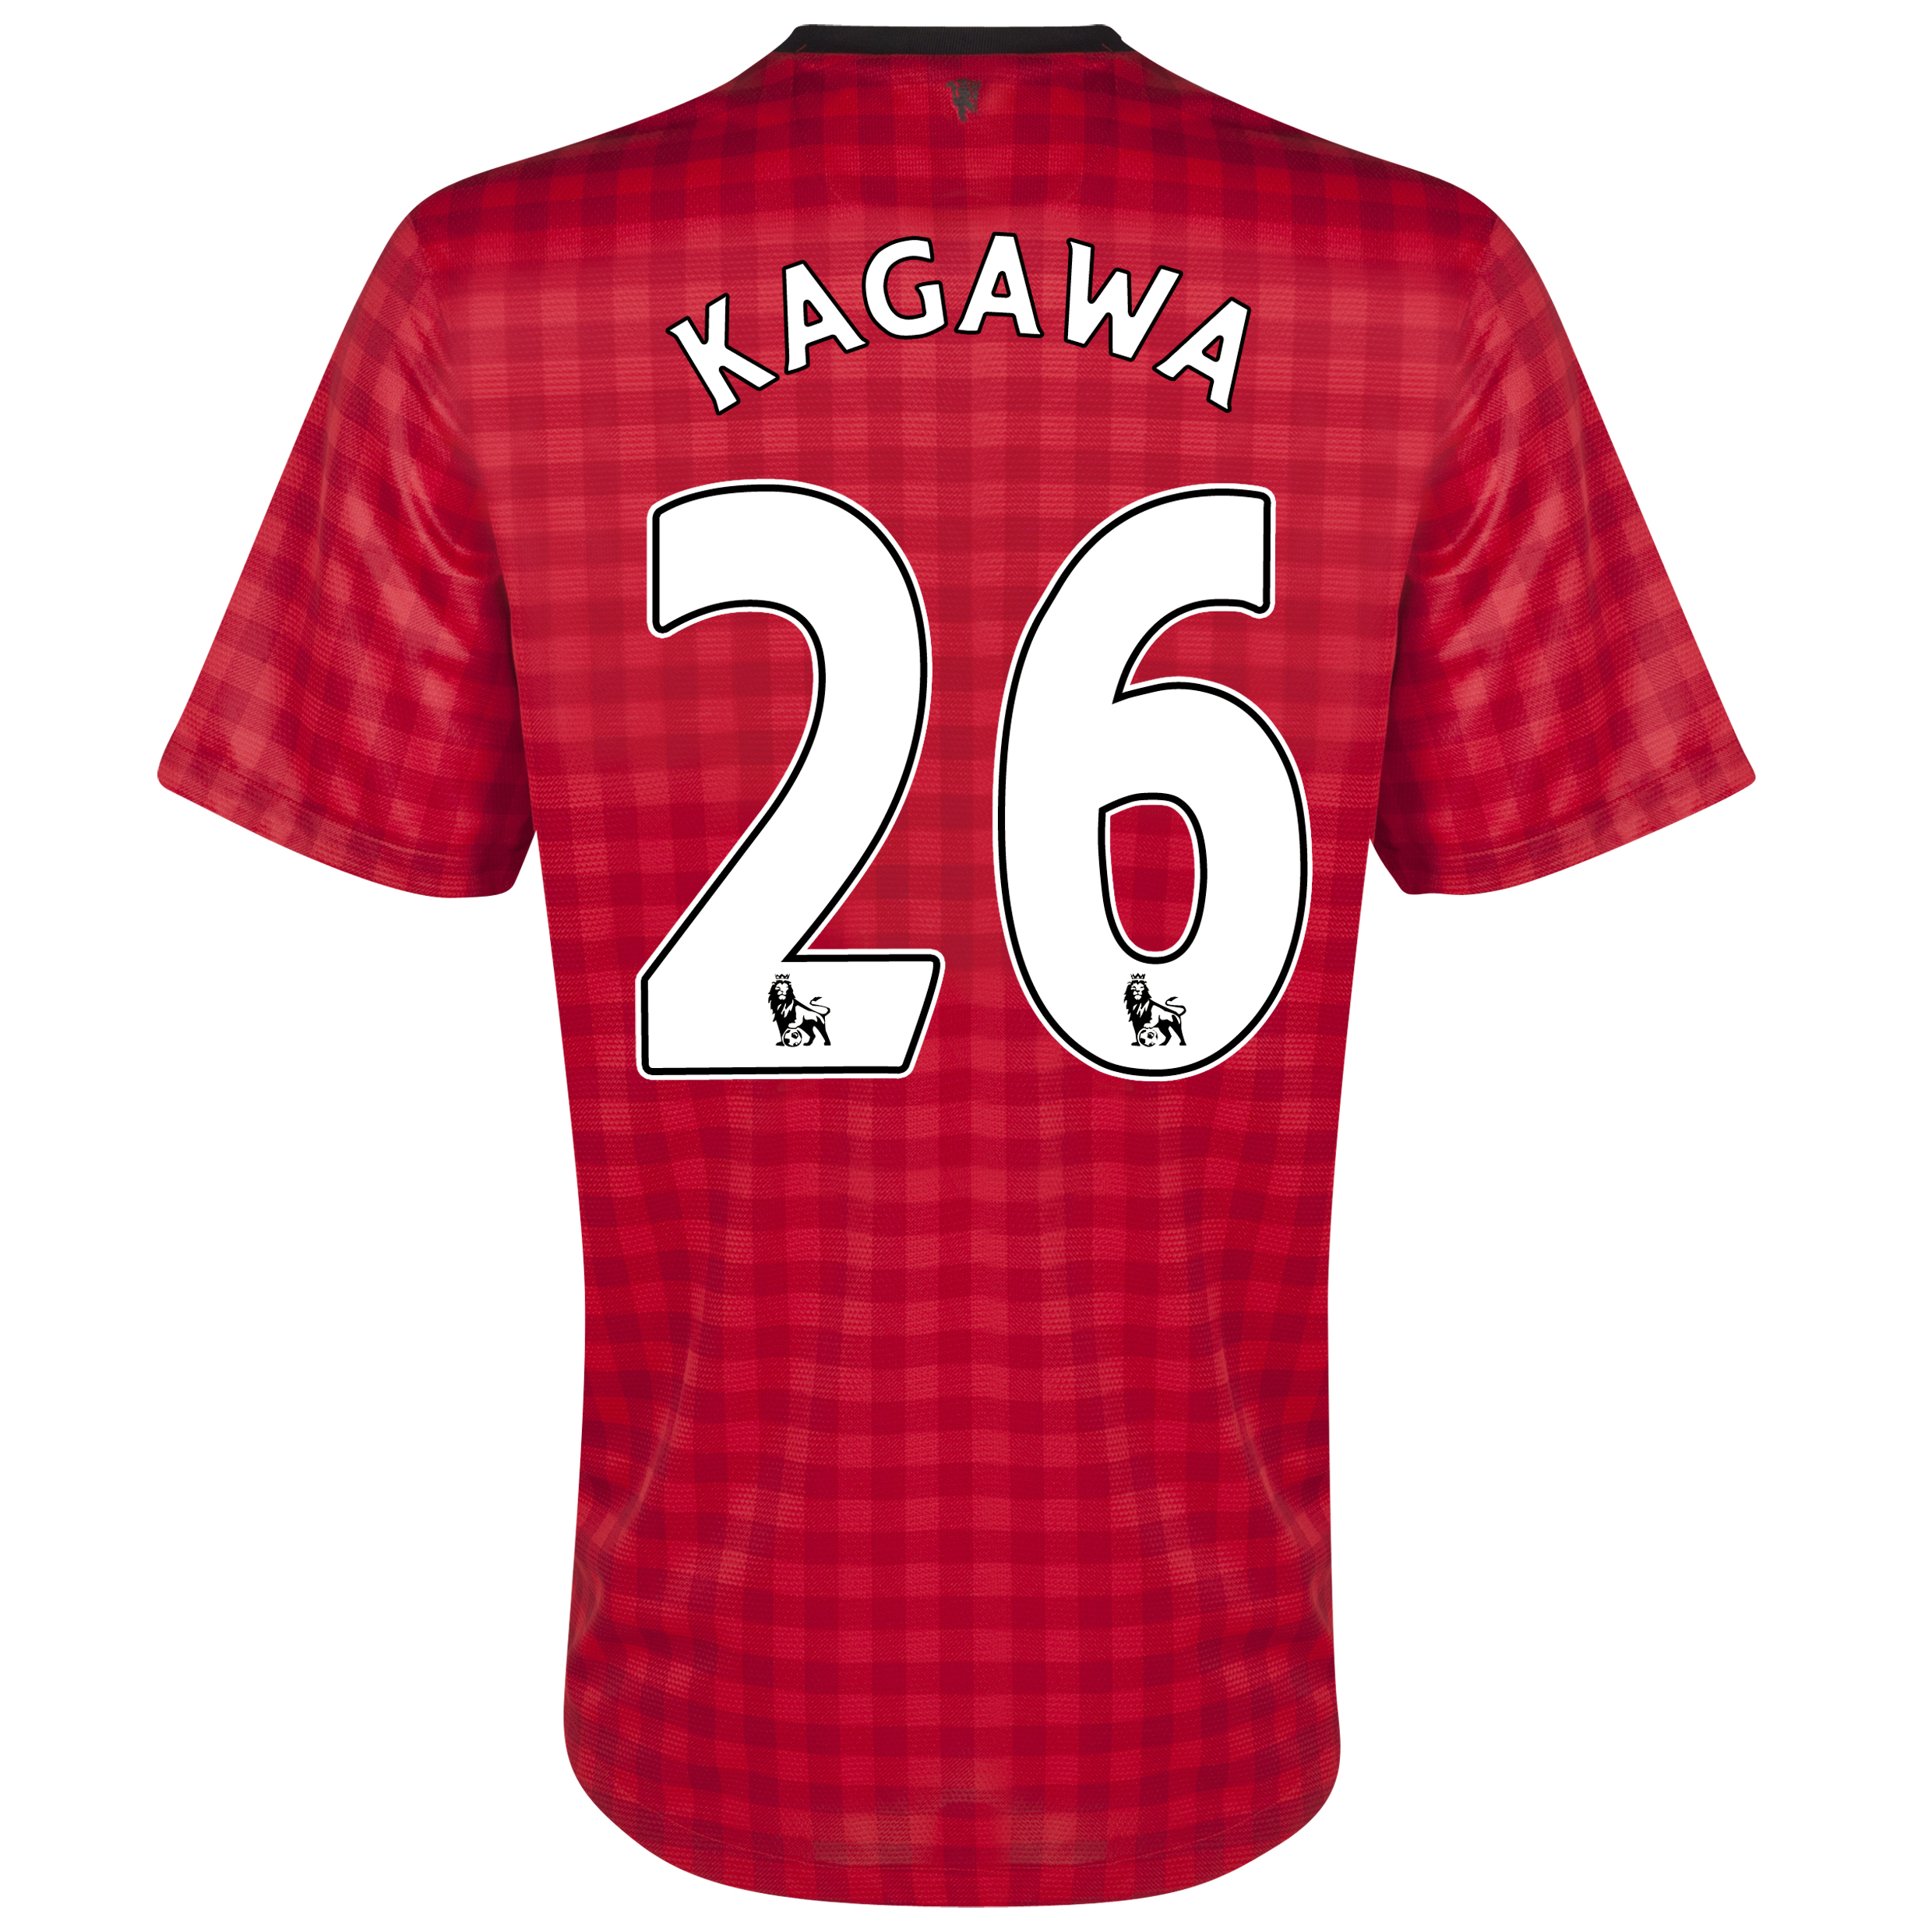 Manchester United Home Shirt 2012/13 with Kagawa 26 printing